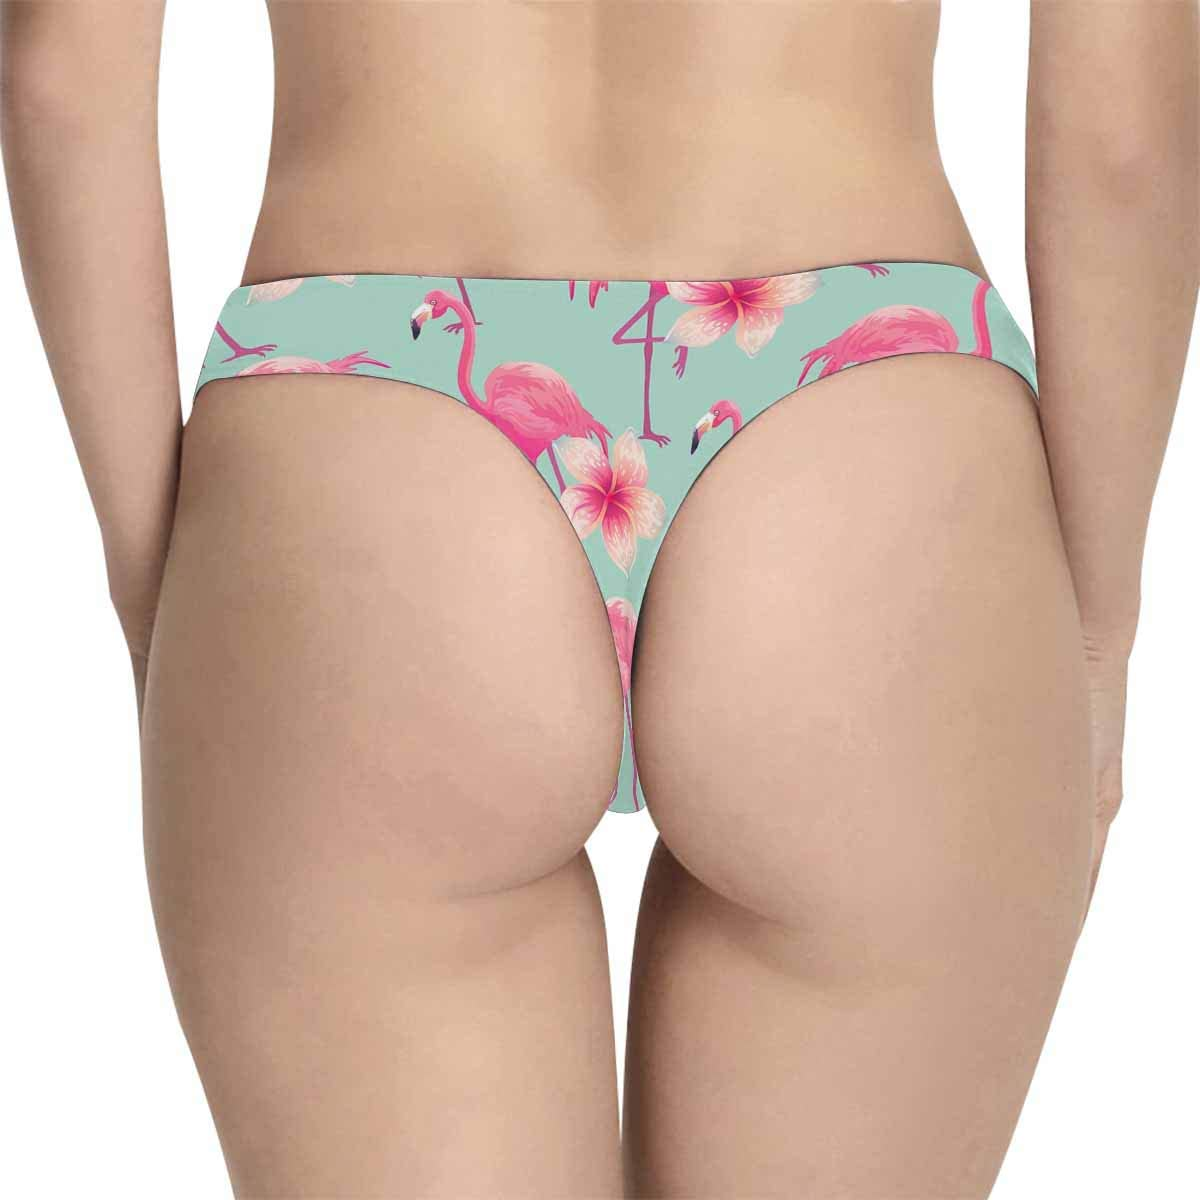 InterestPrint Womens Thong Underwear Stretchy Panties Tropical Pattern with Pink Flamingo and Flowers